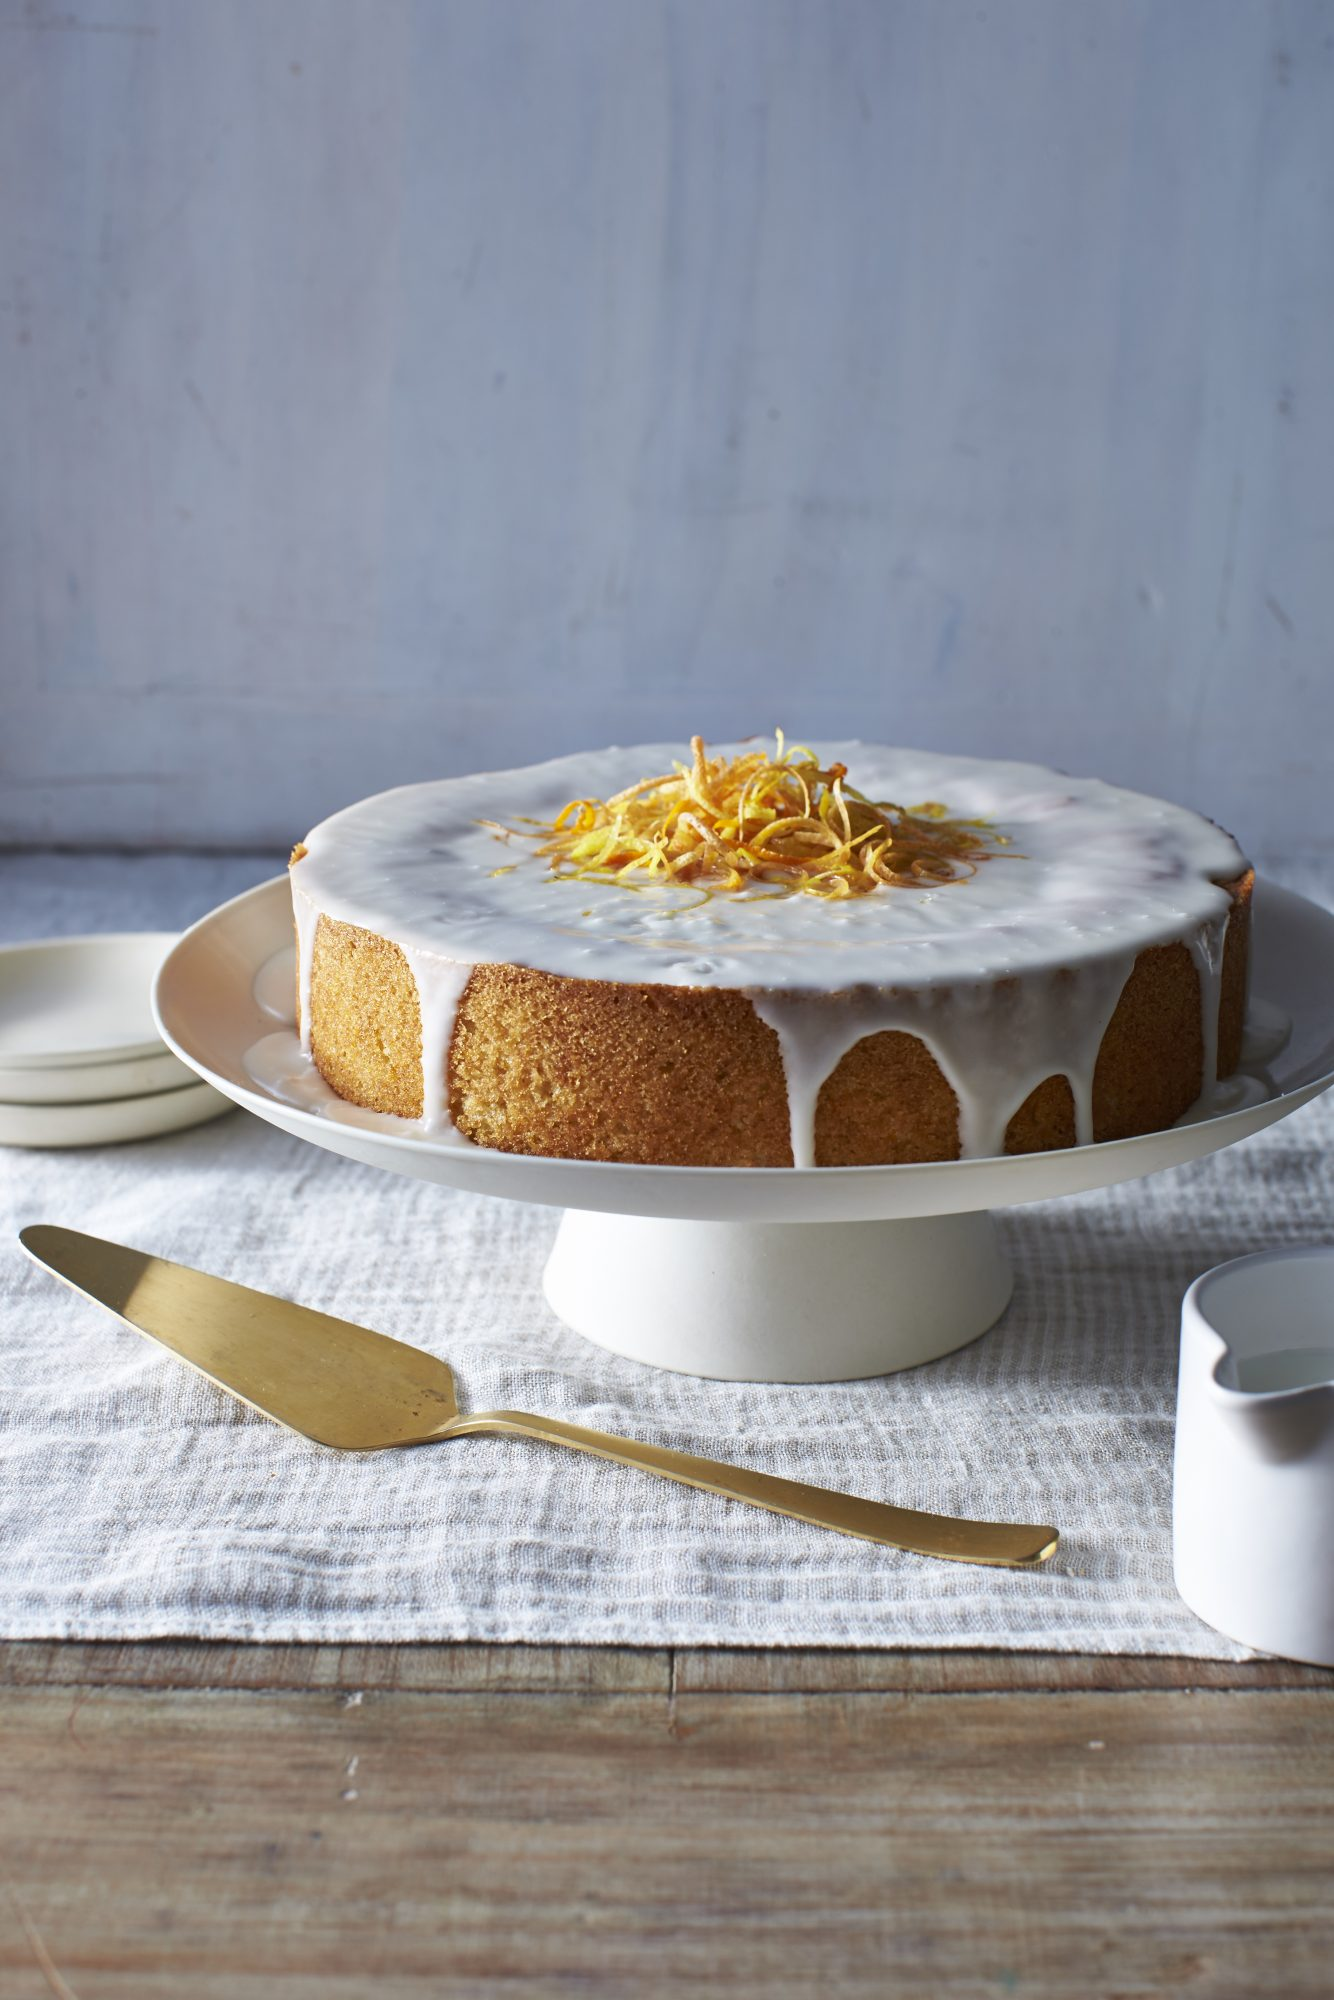 mr-orange-olive-oil-cake-image